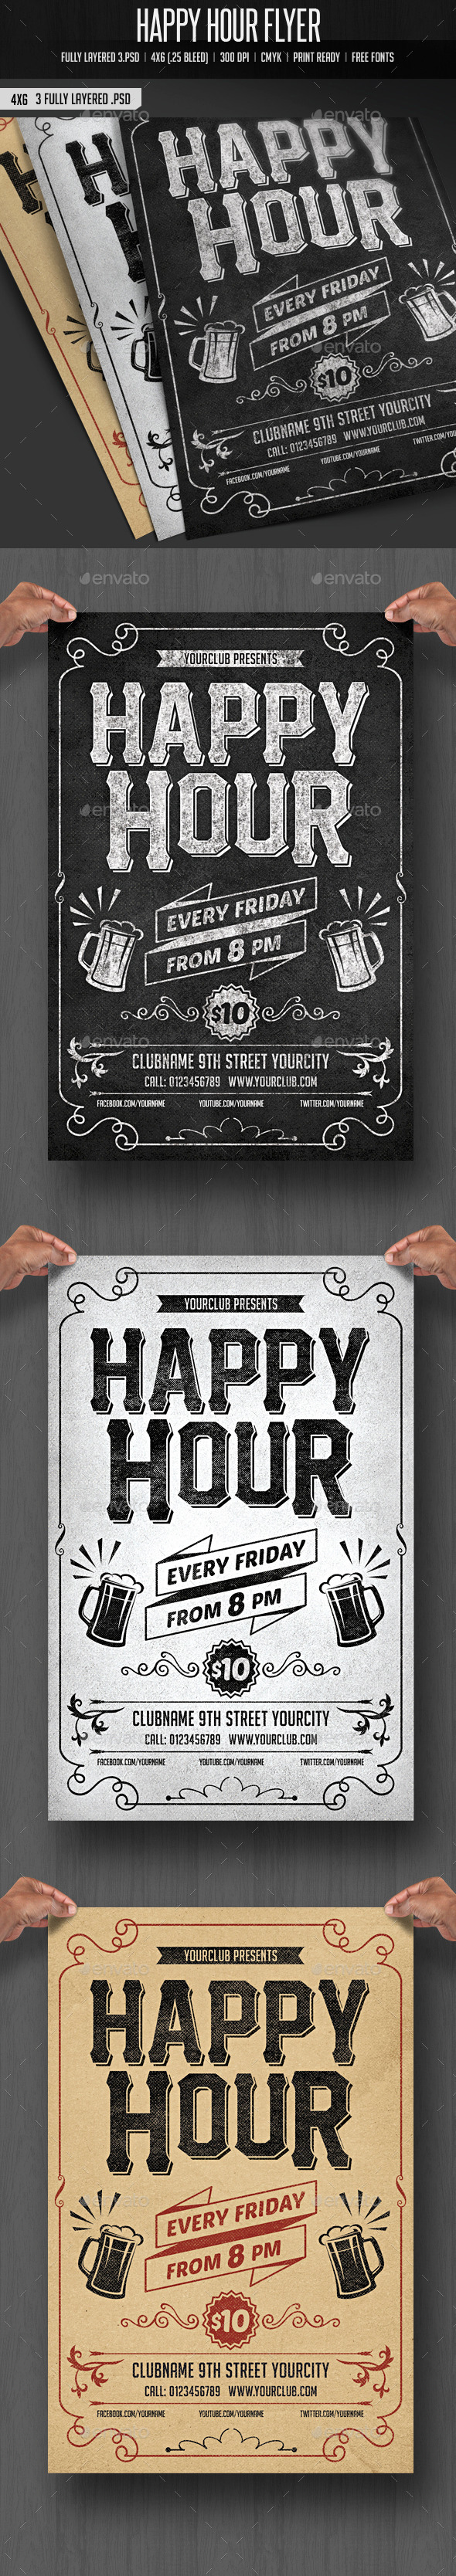 GraphicRiver Happy Hour Flyer 10810429